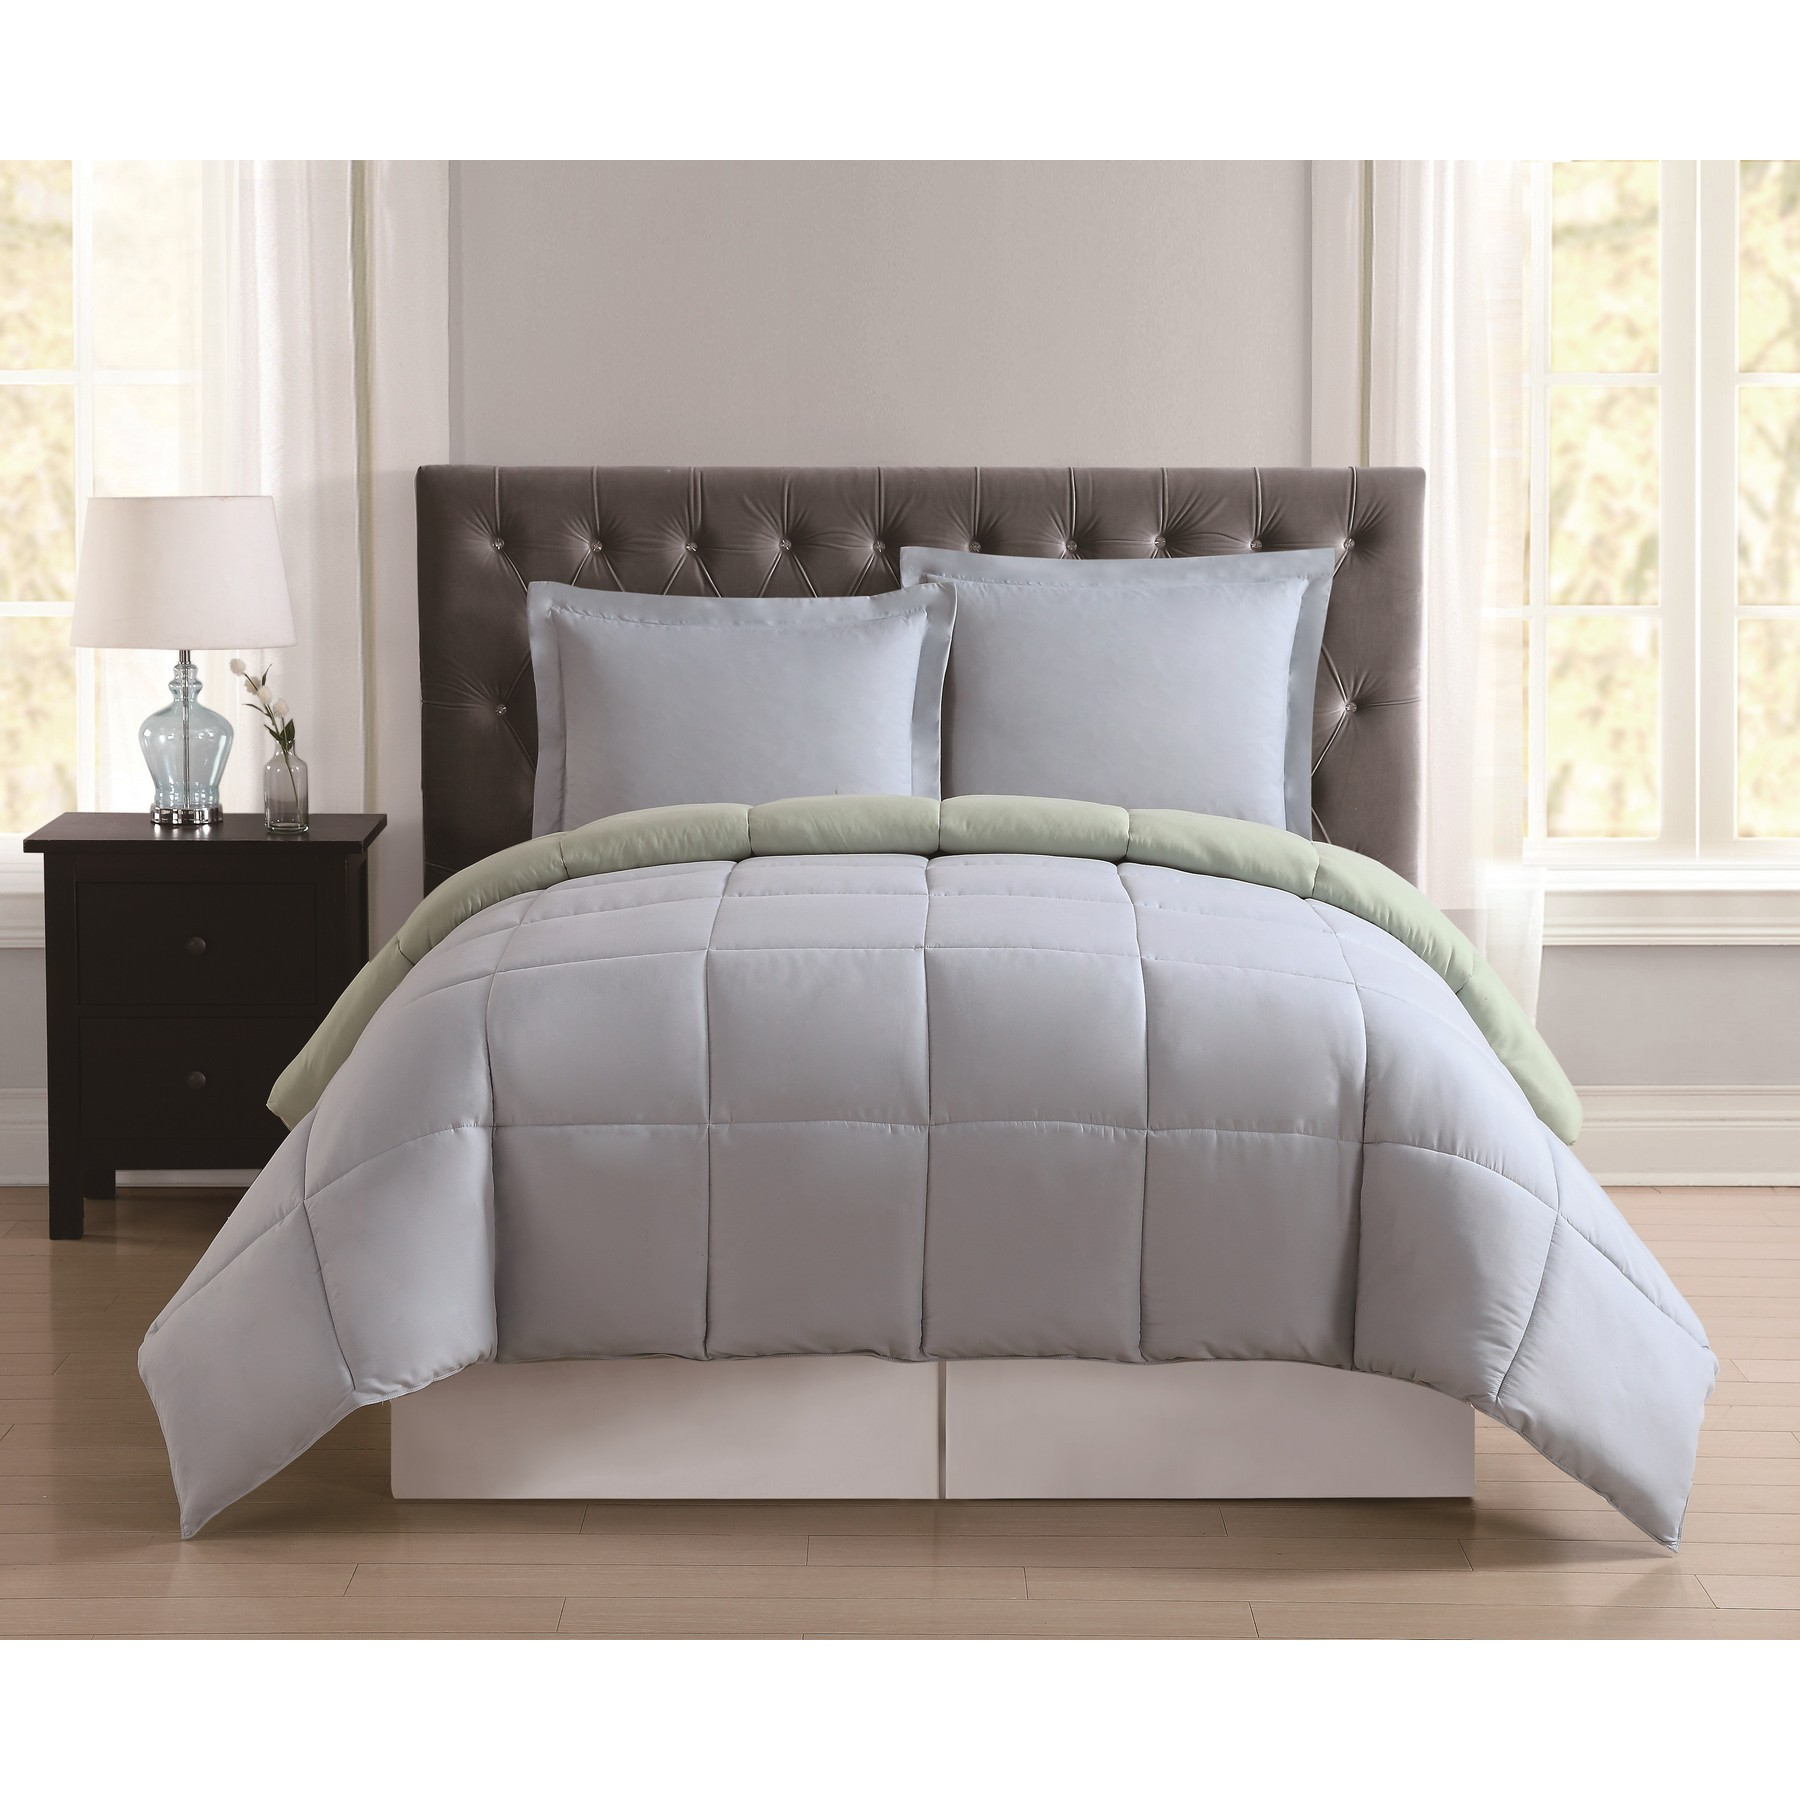 Truly Soft Everyday Blush and Lavender Reversible Twin XL Comforter Set